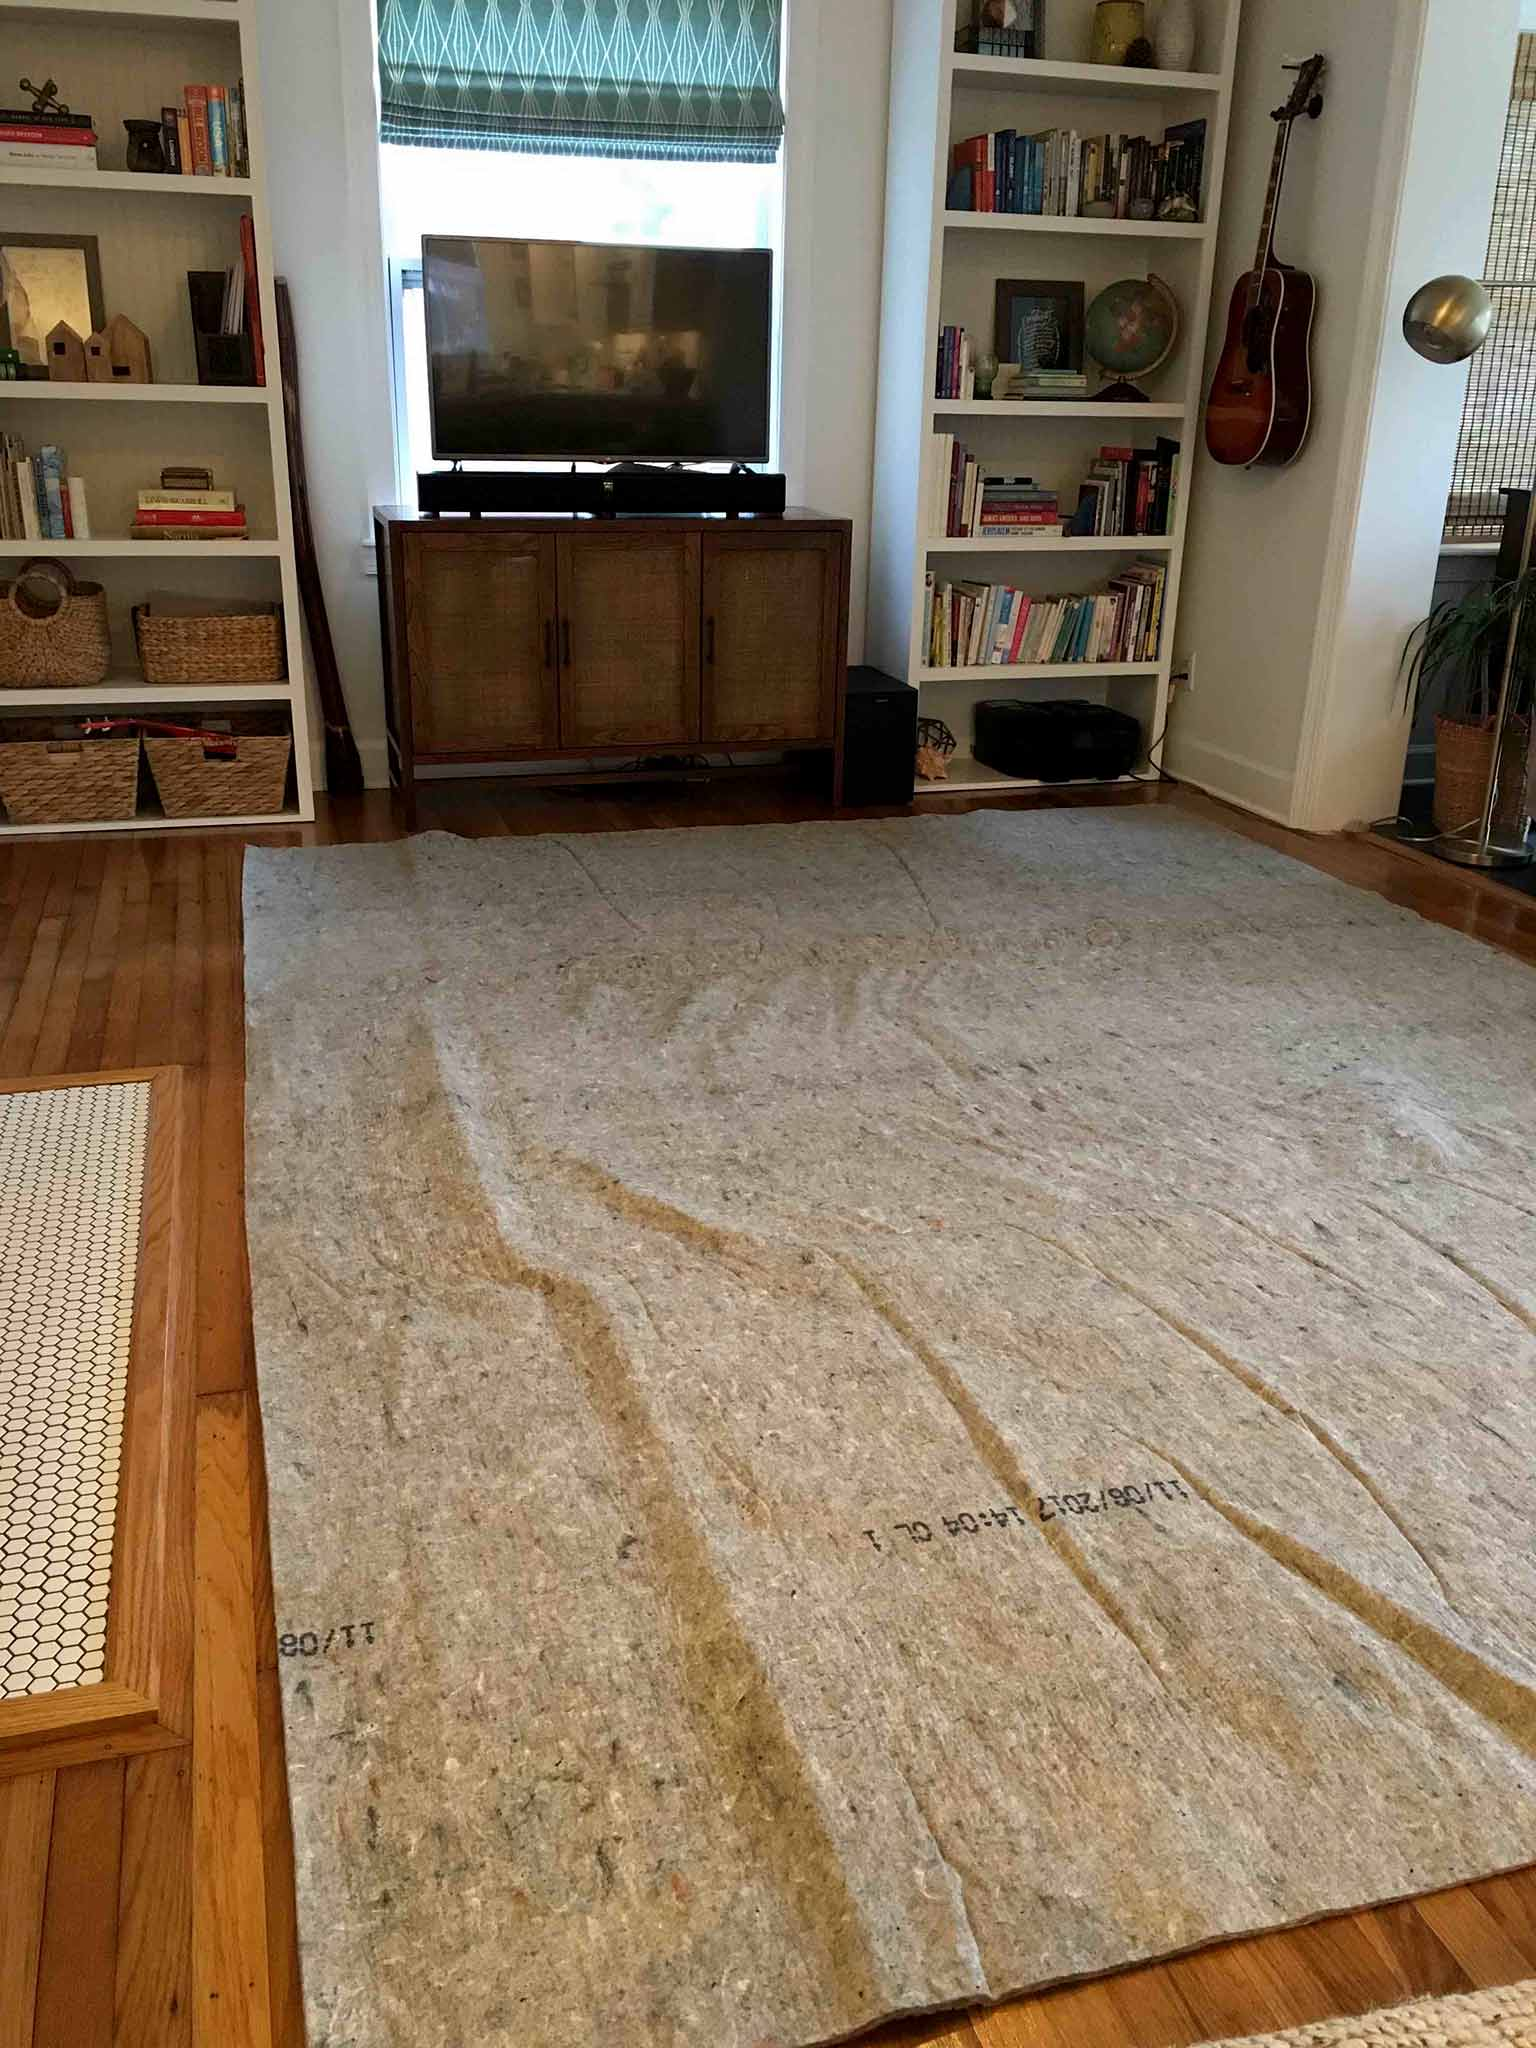 How I Wrecked My Hardwood Floors And How I Fixed Them That